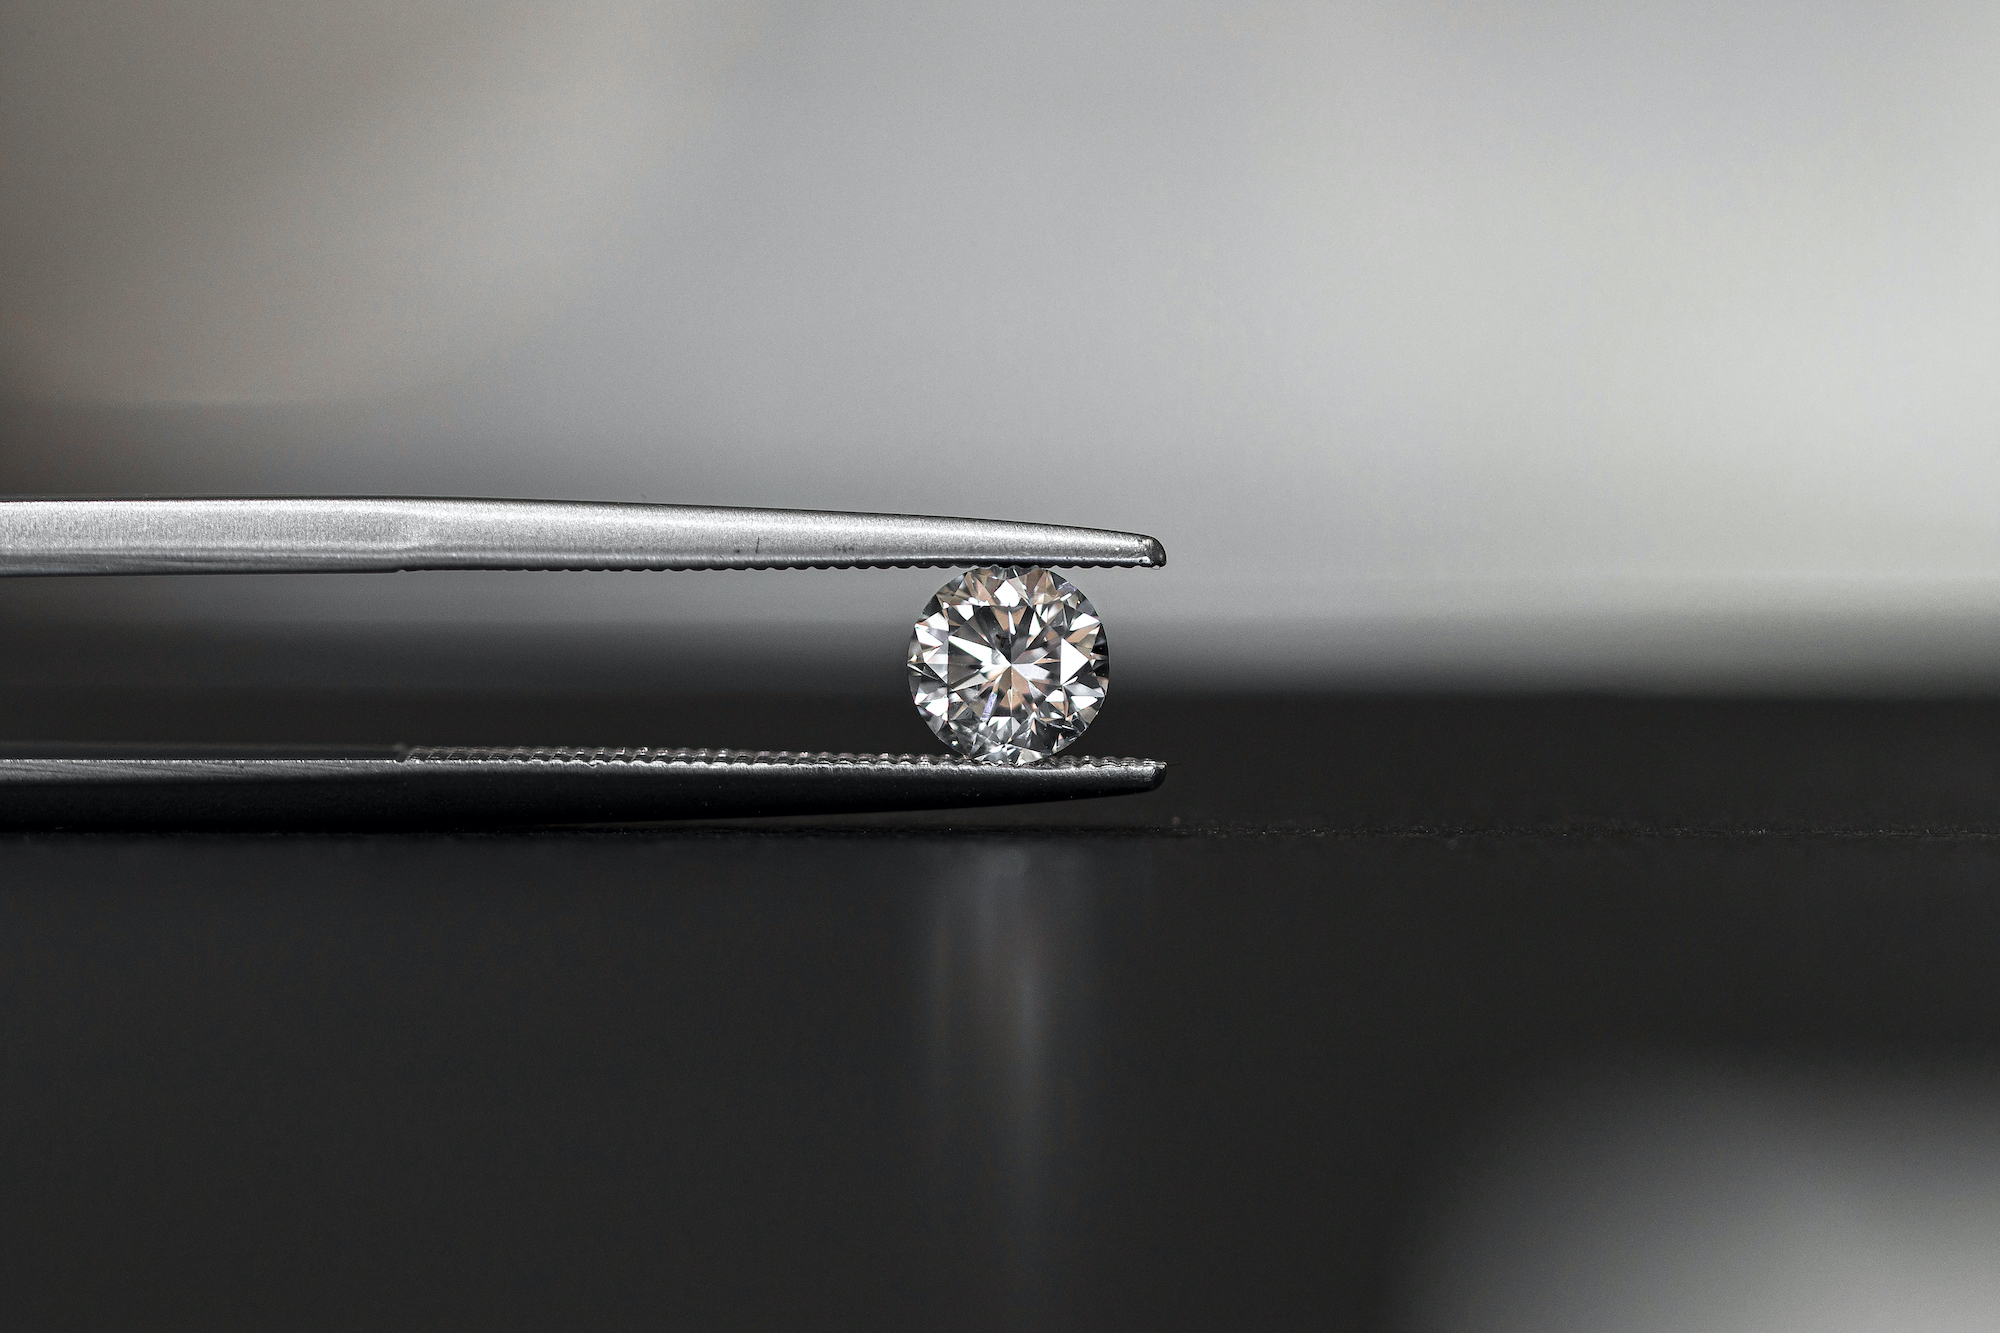 round diamond being held by a pair of tweezers over a reflective table